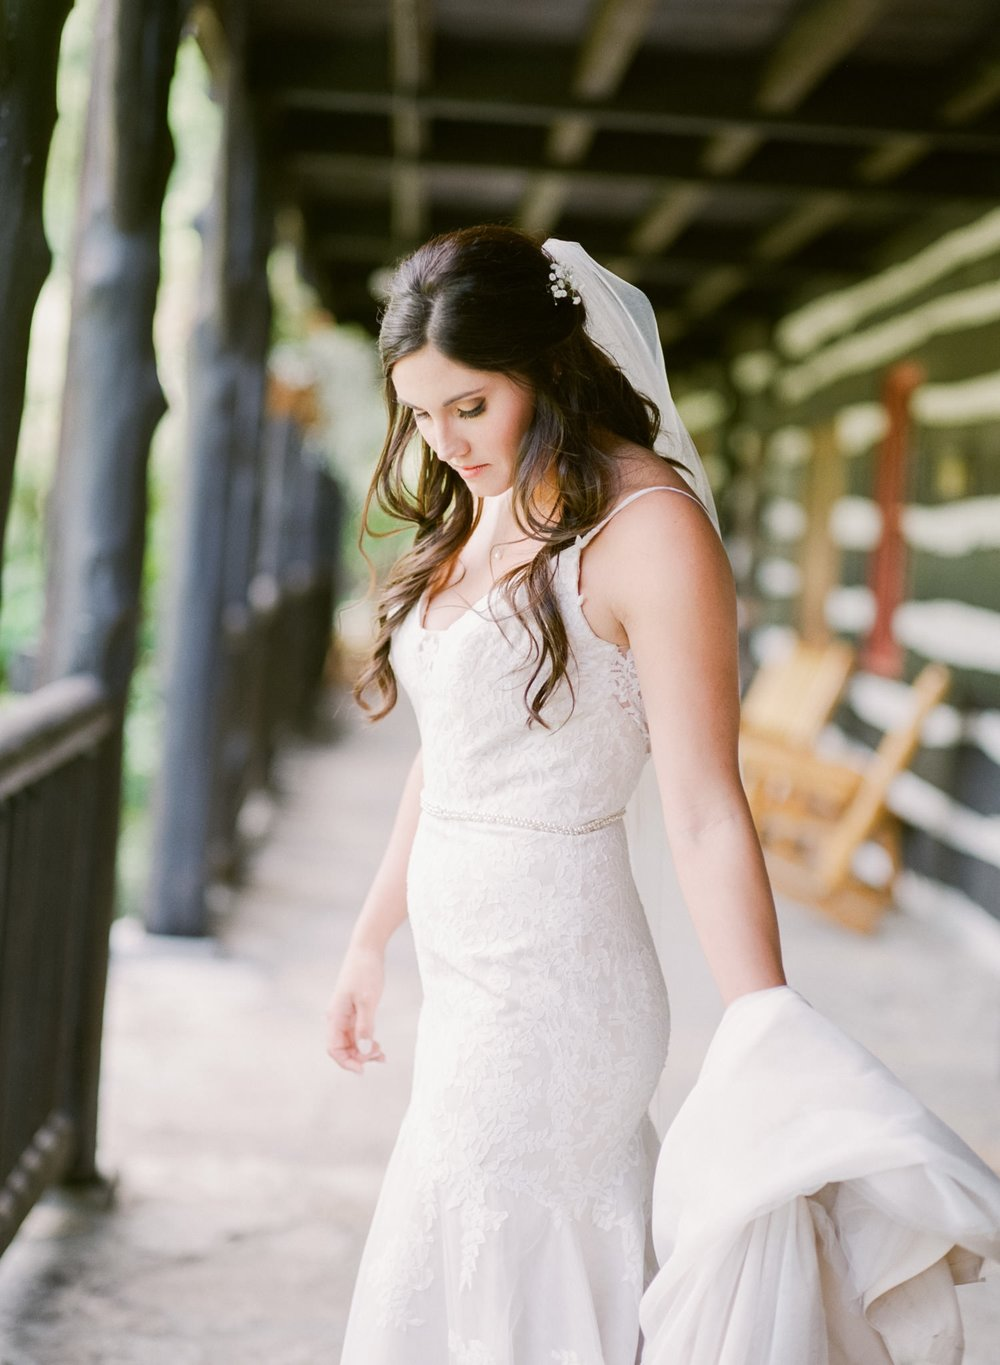 Image of bride taken with the Hasselblad H2 and HC 100mm f/2.2 lens on Fuji 400H